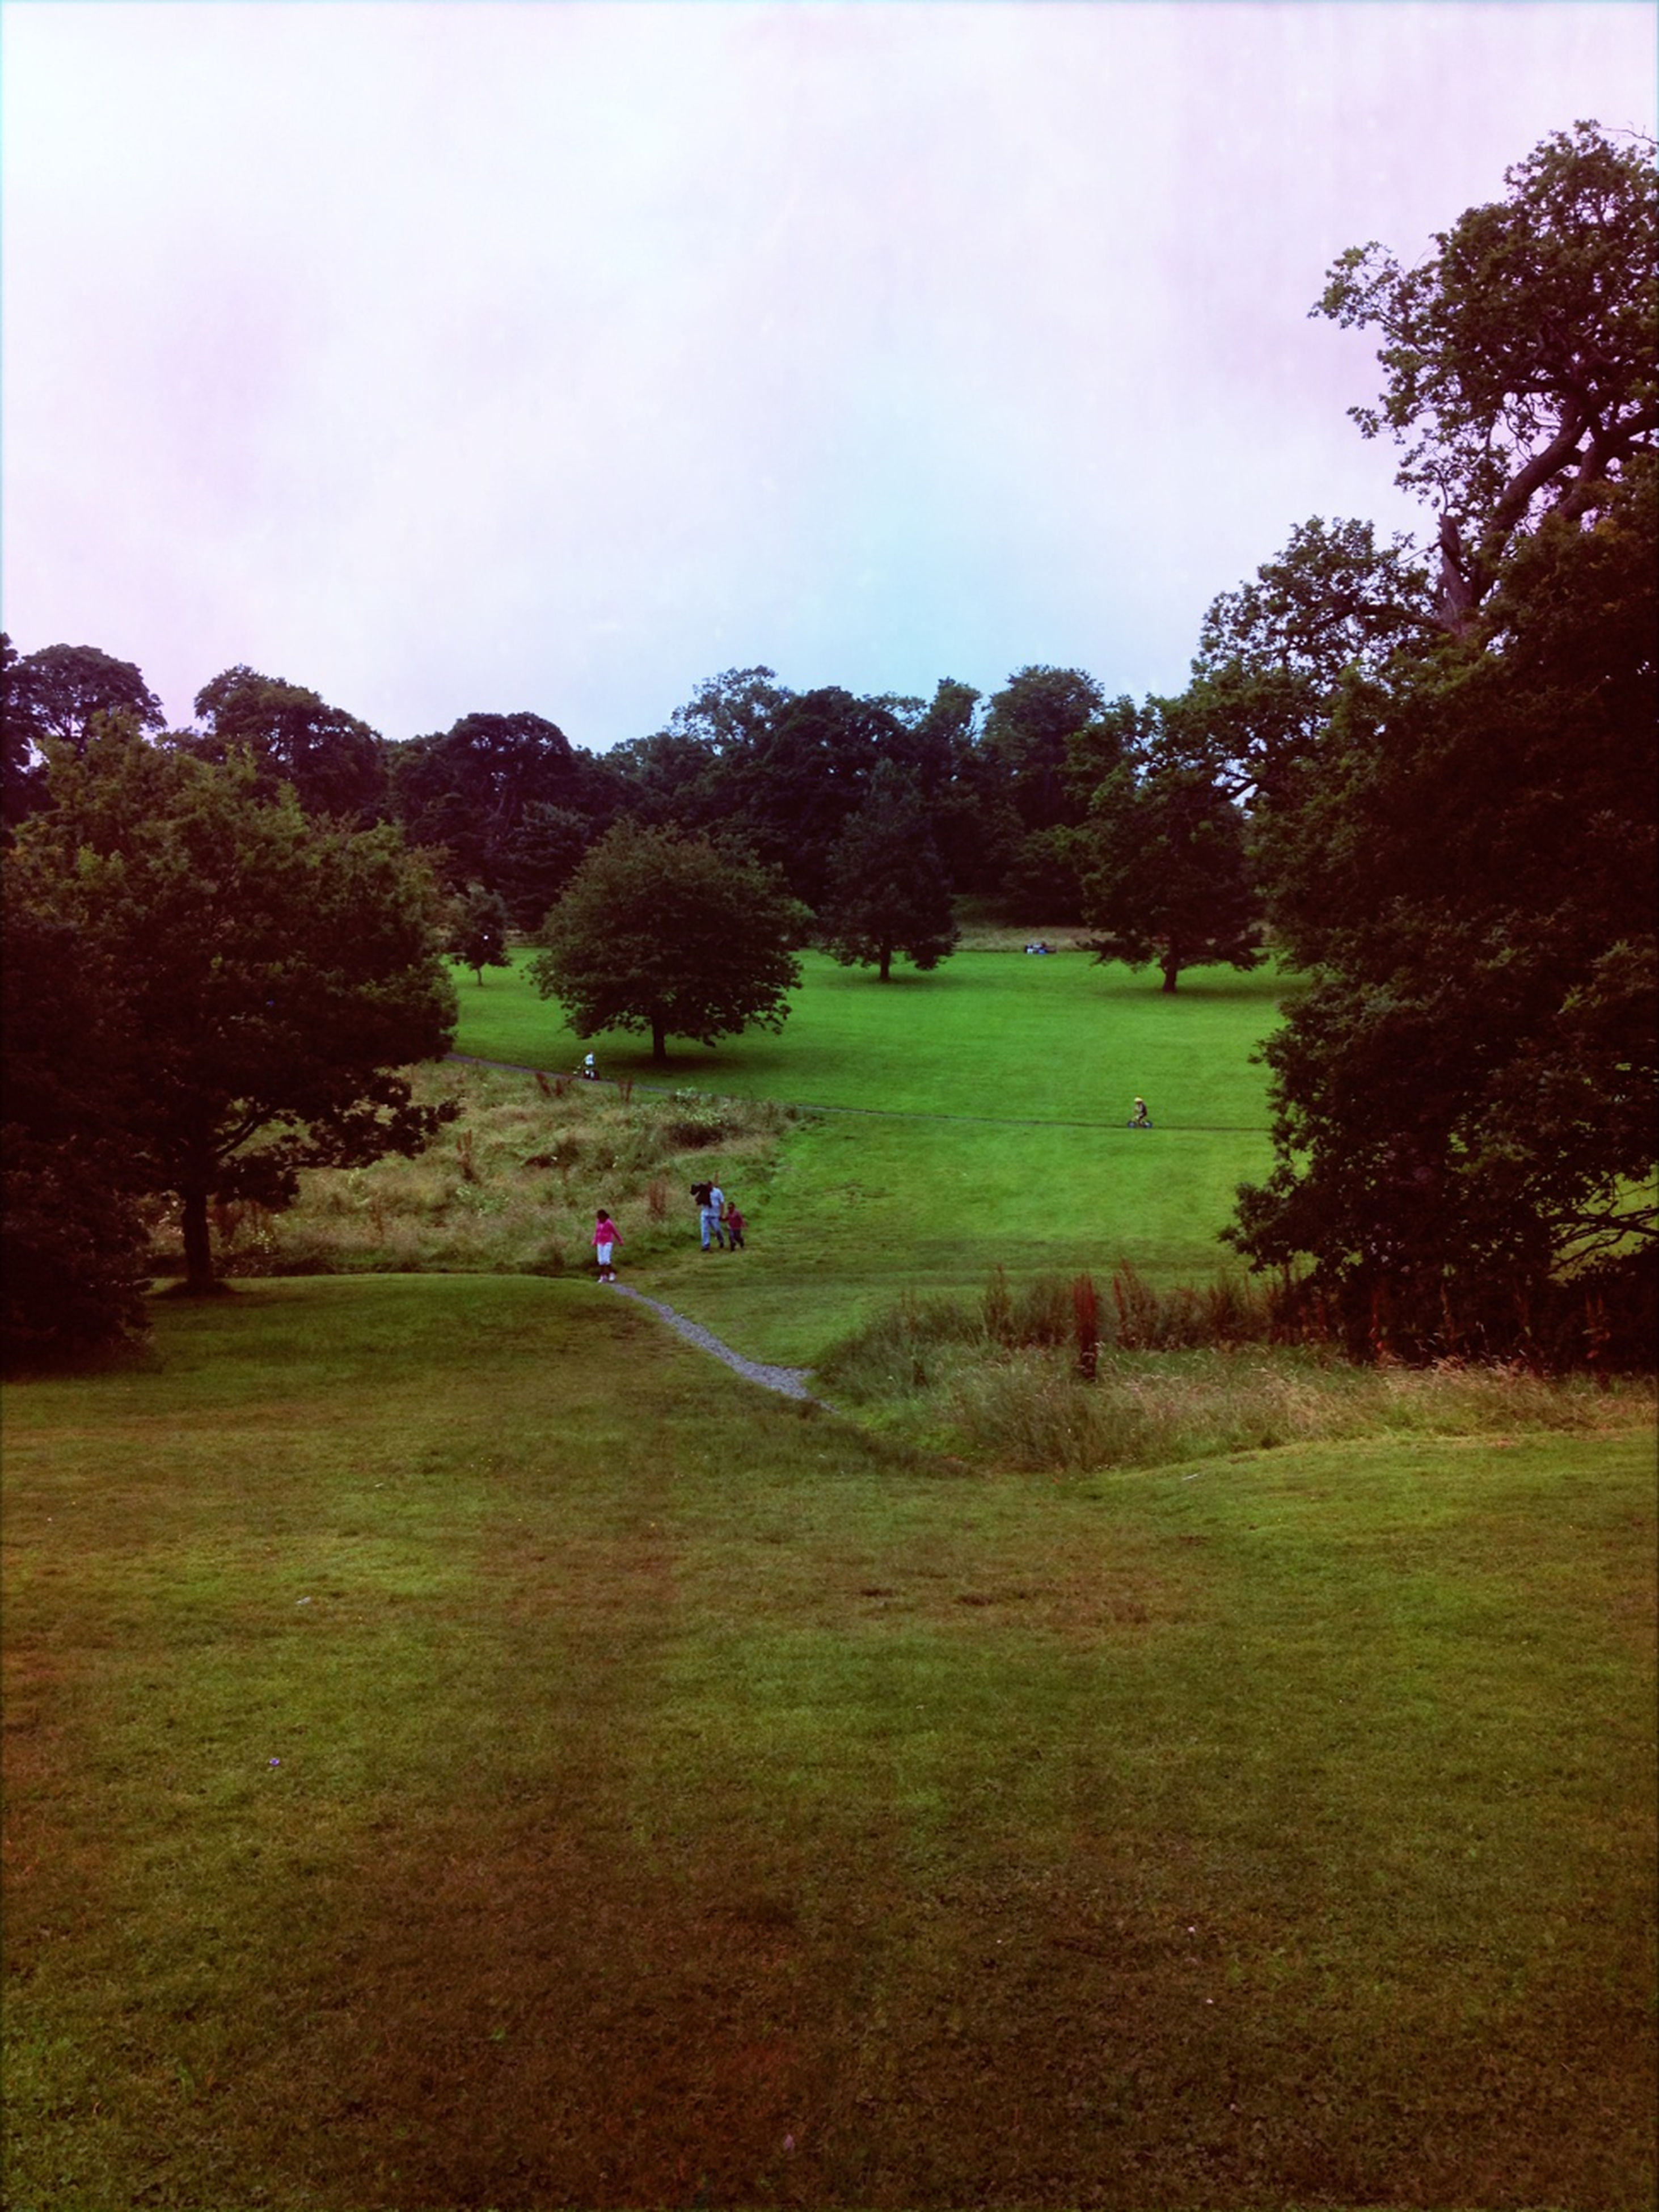 tree, grass, green color, field, landscape, tranquility, tranquil scene, park - man made space, sky, grassy, growth, nature, beauty in nature, scenics, park, leisure activity, day, outdoors, lawn